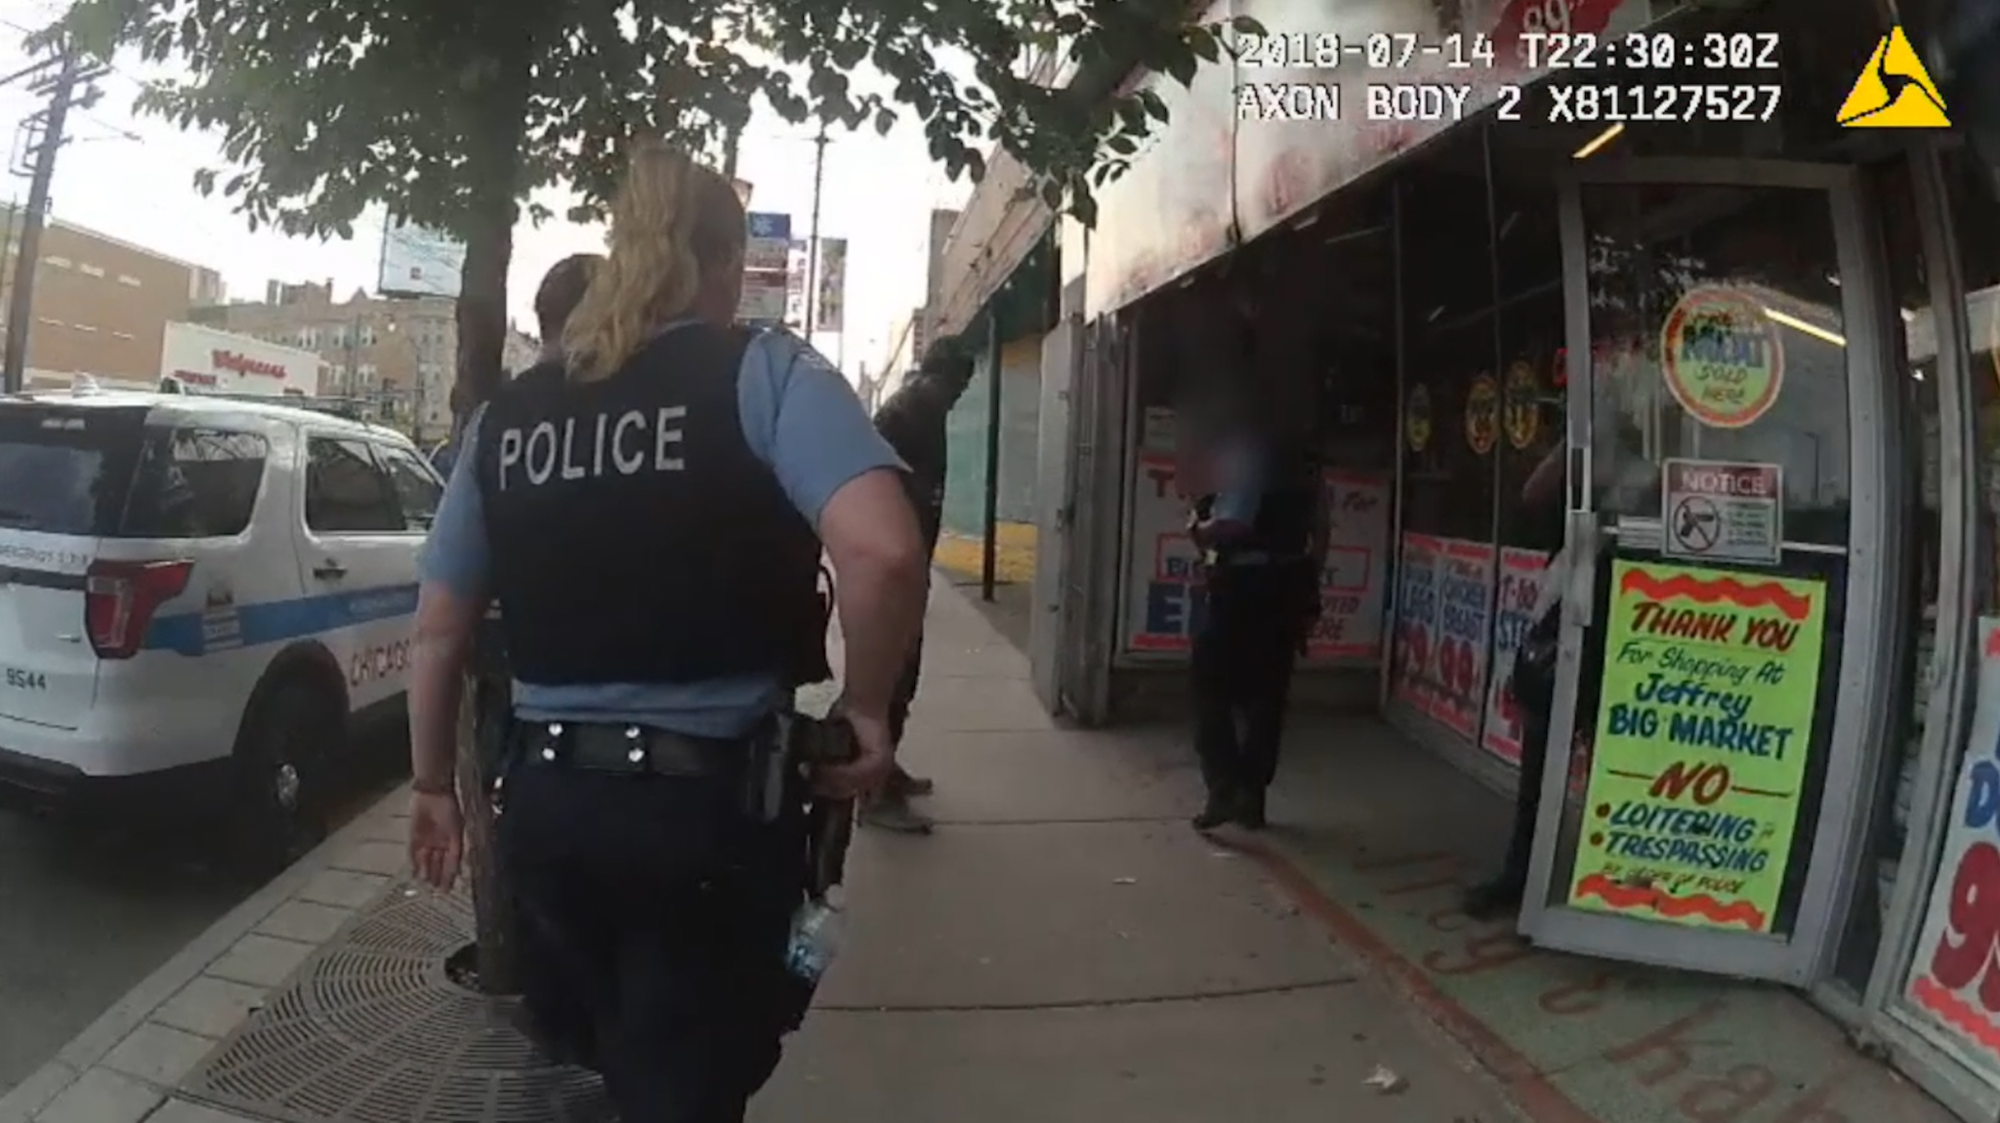 Chicago police release body camera footage of fatal officer-involved shooting that prompted protests